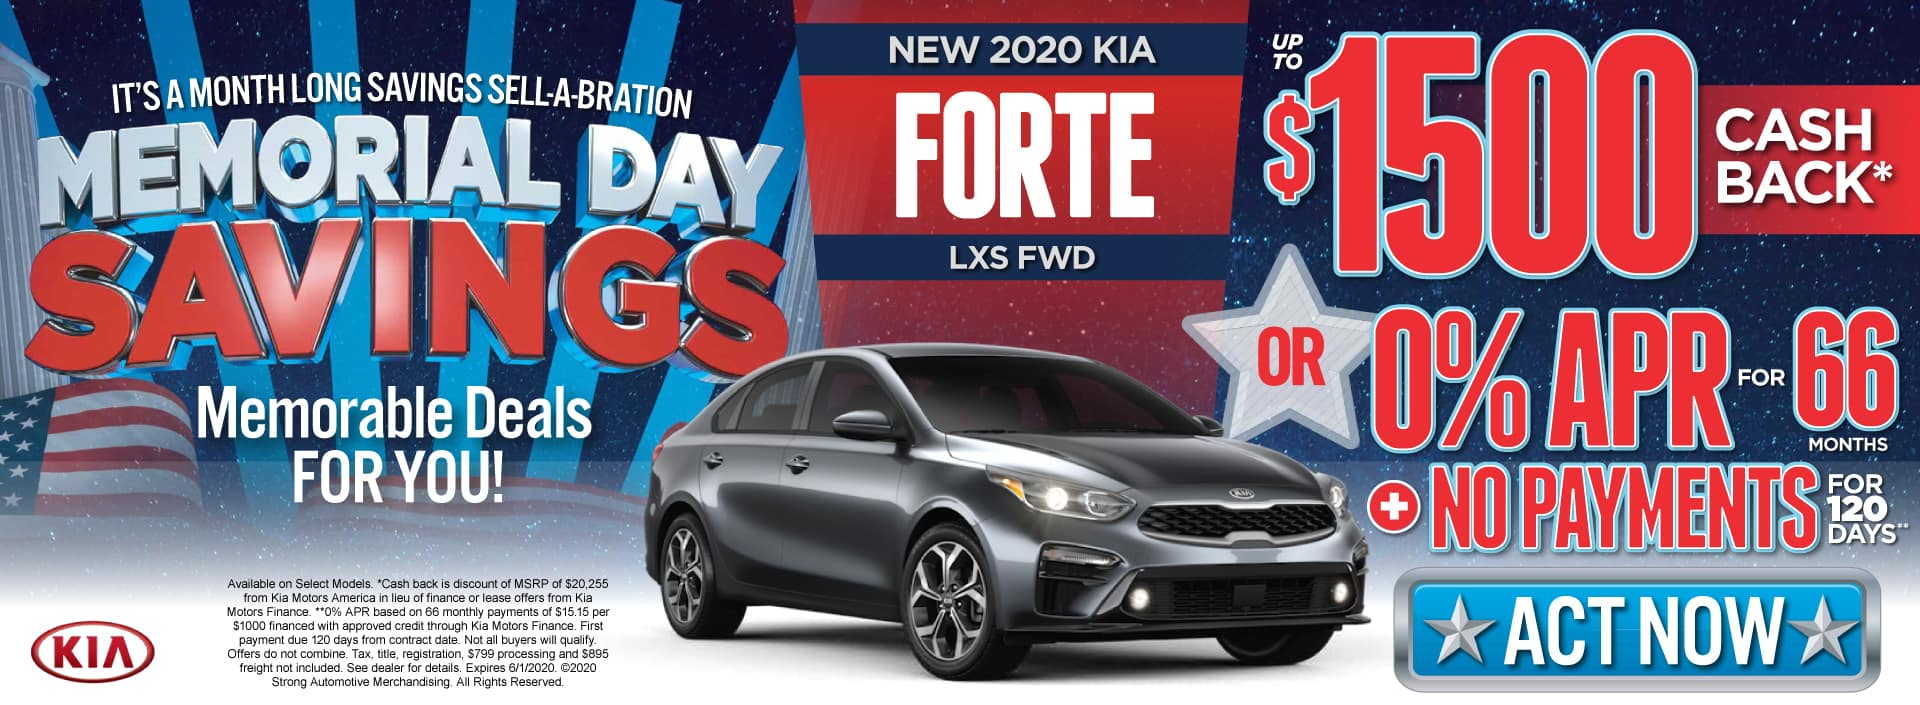 New 2020 Kia Forte - $1500 Cash Back or 0% APR for 66 Months - Shop Now